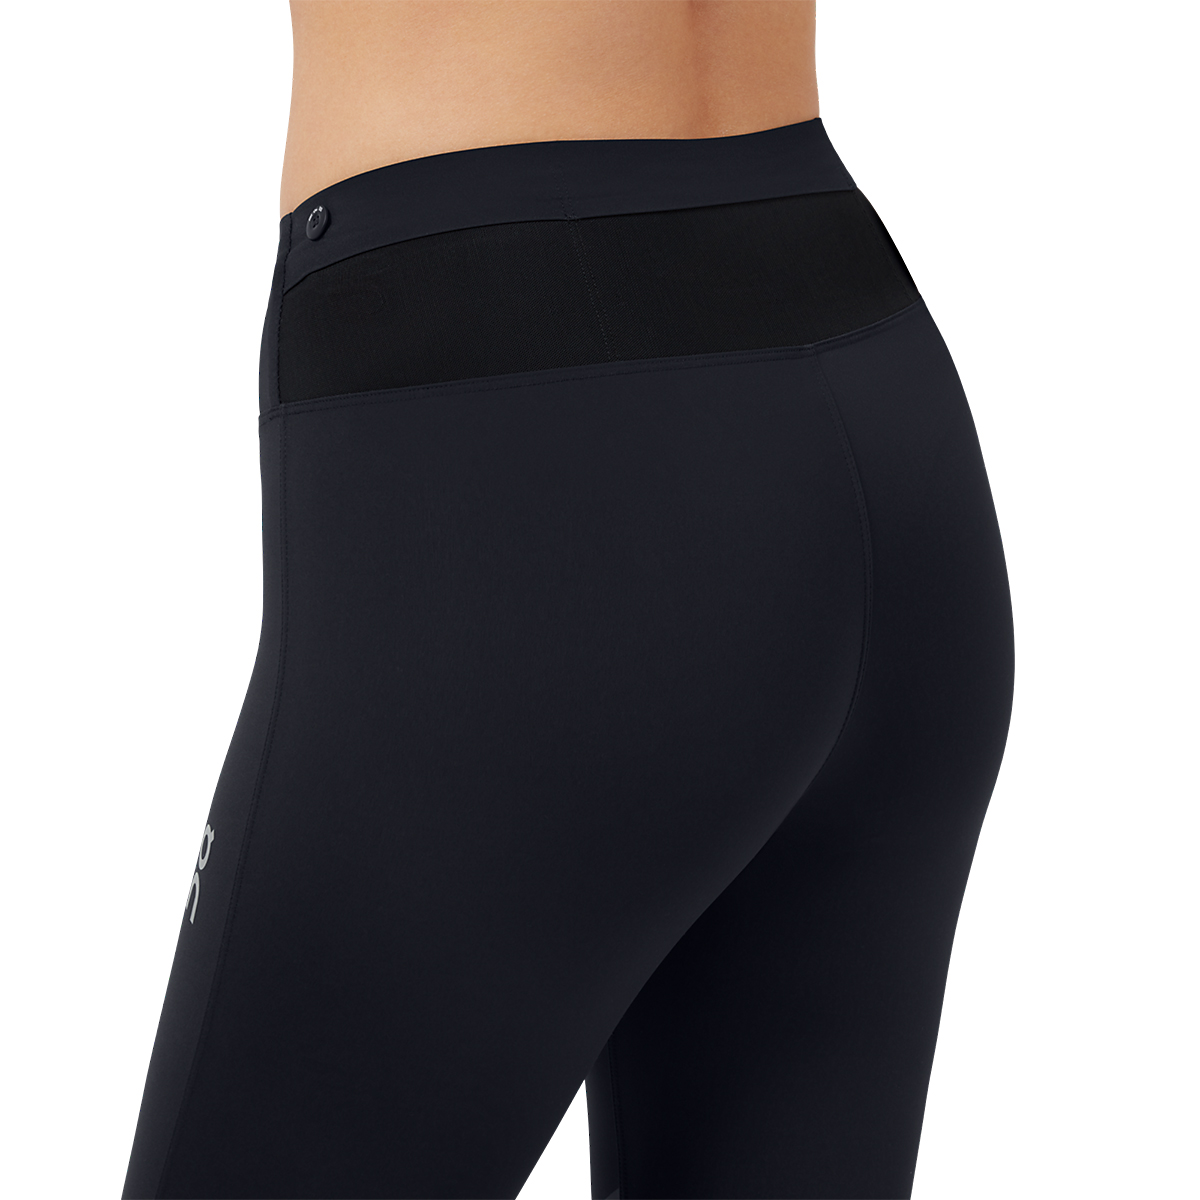 Women's On Tights Long - Color: Black - Size: XS, Black, large, image 4